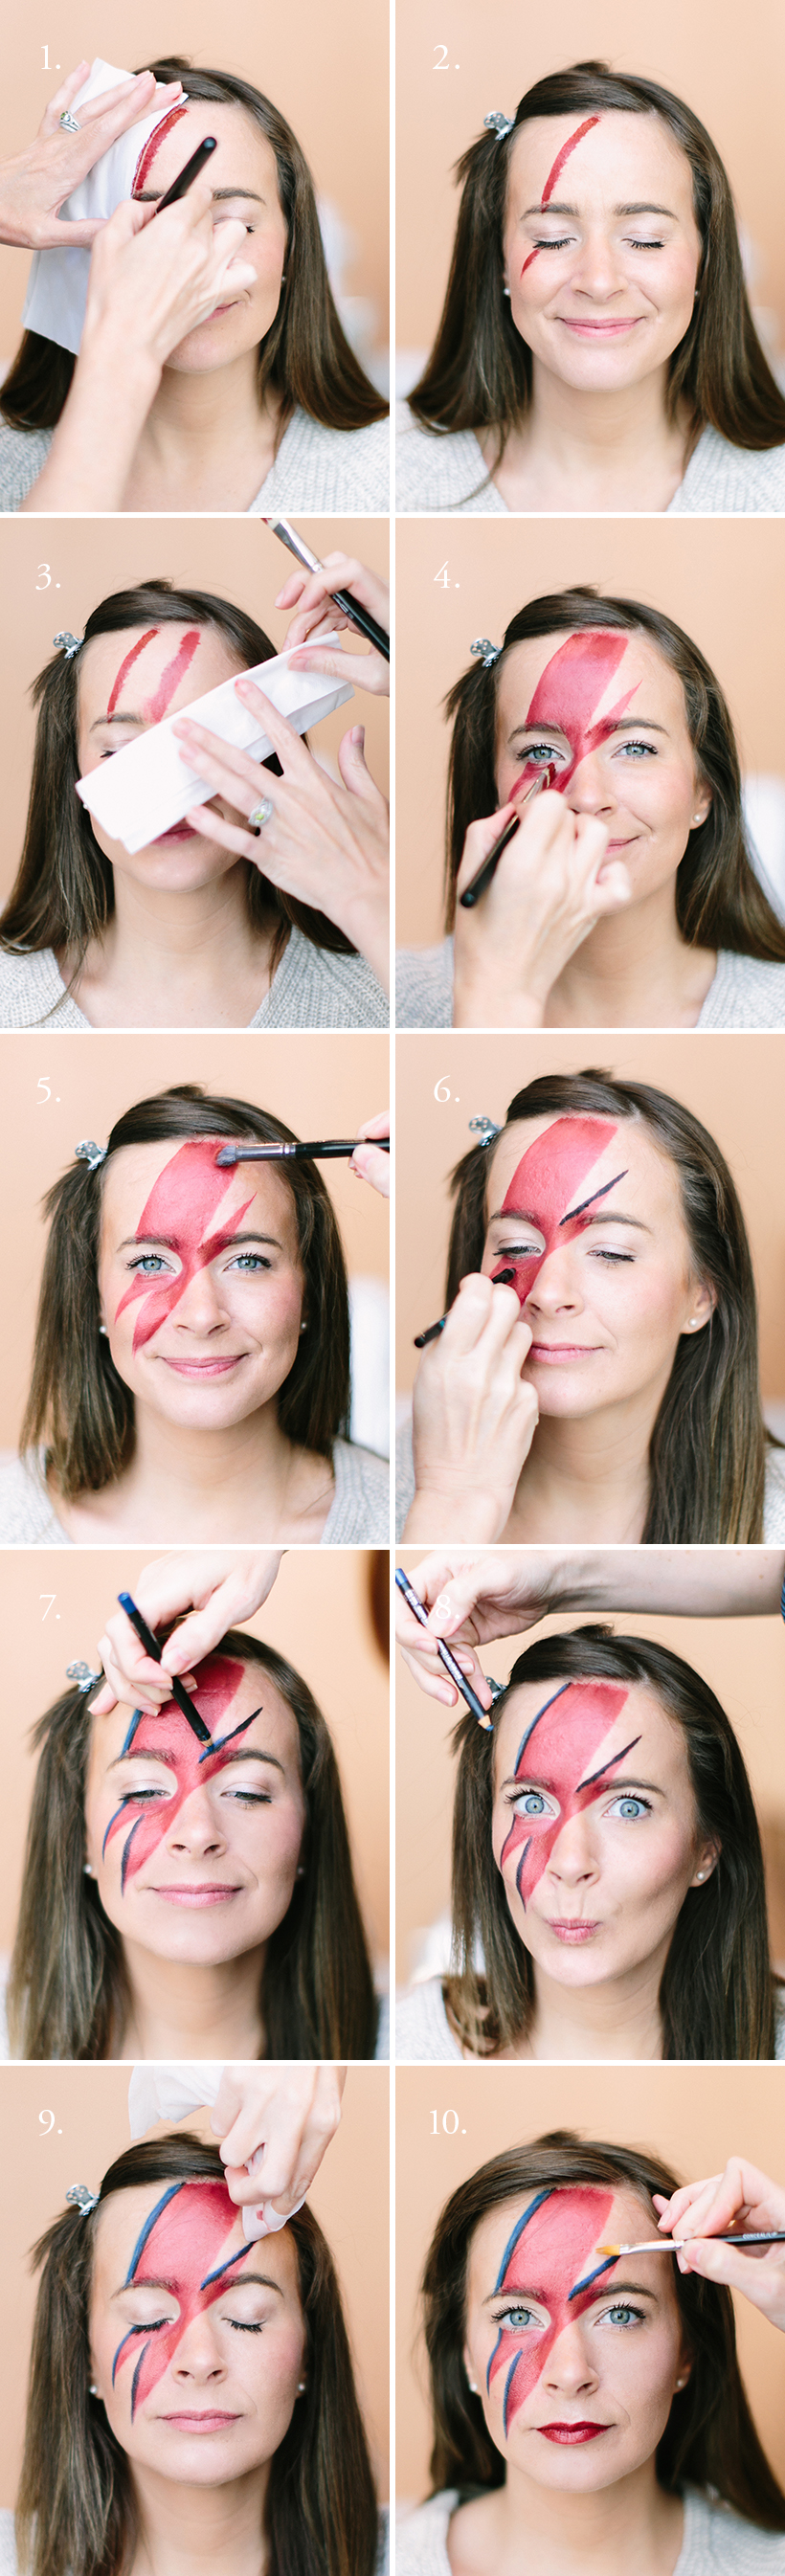 Diy david bowie face paint camille styles david bowie makeup tutorial camille styles solutioingenieria Gallery